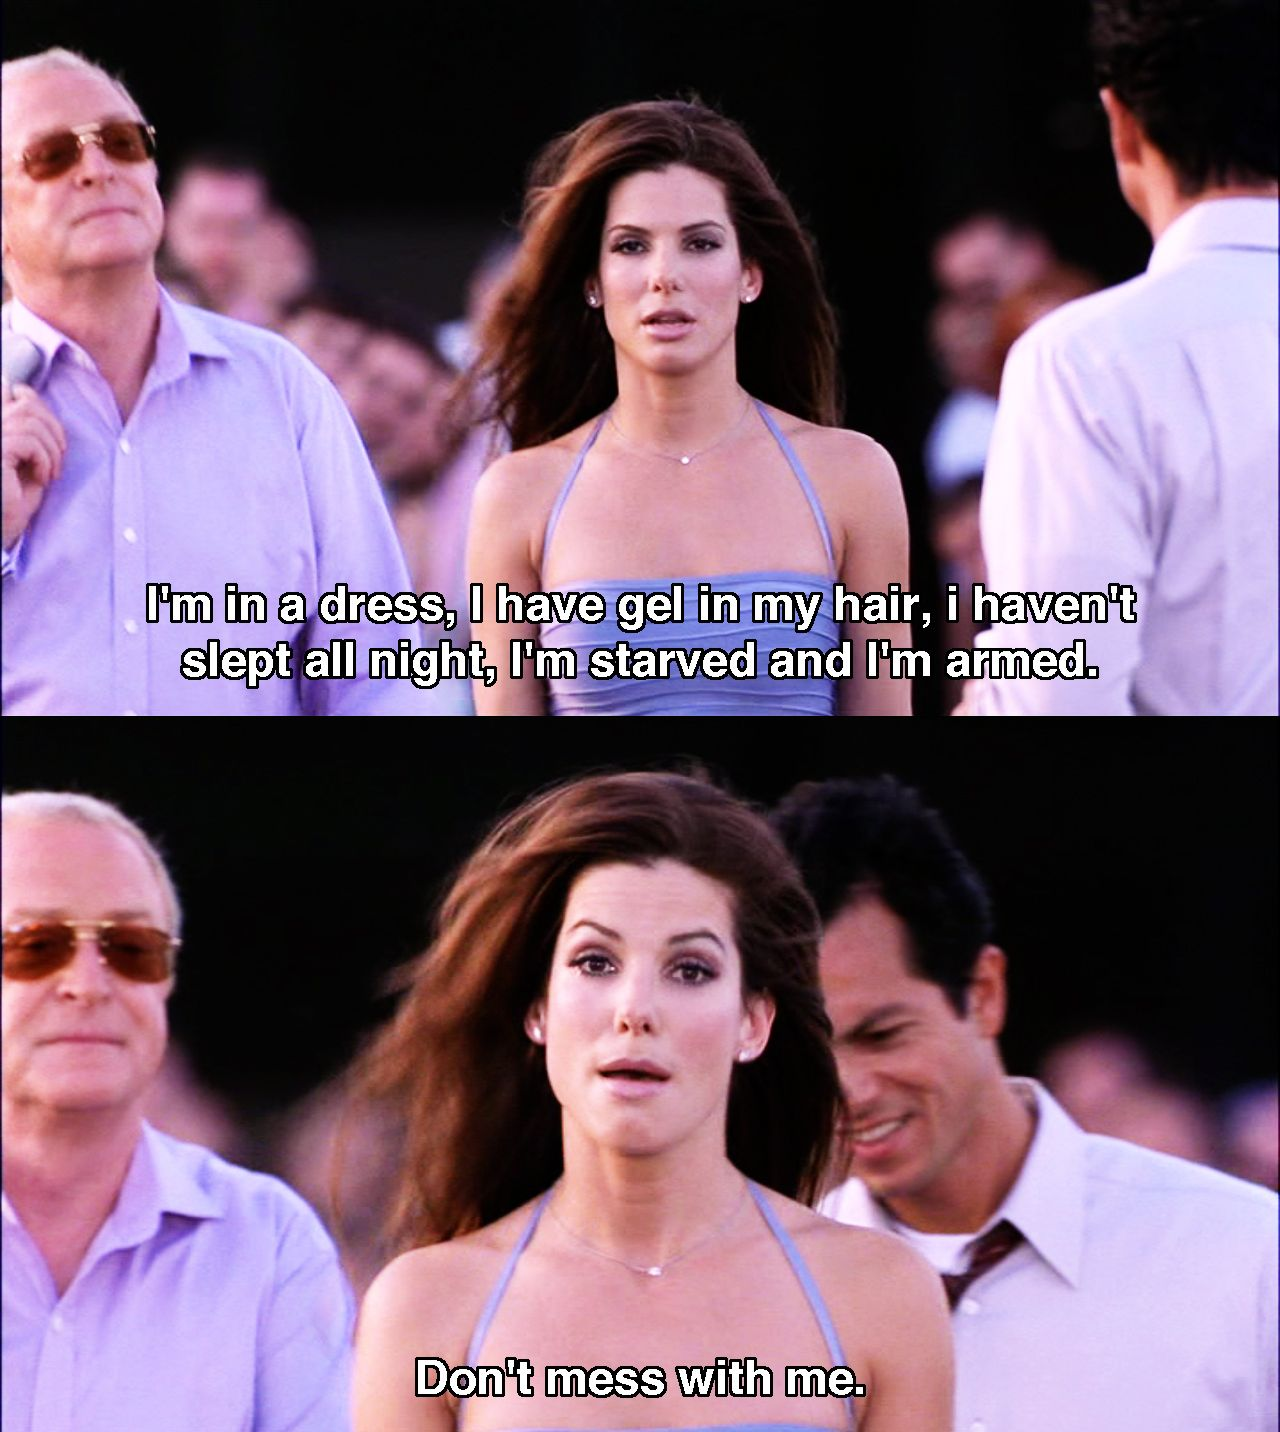 Funny Quotes From Movies: Miss Congeniality (2000)